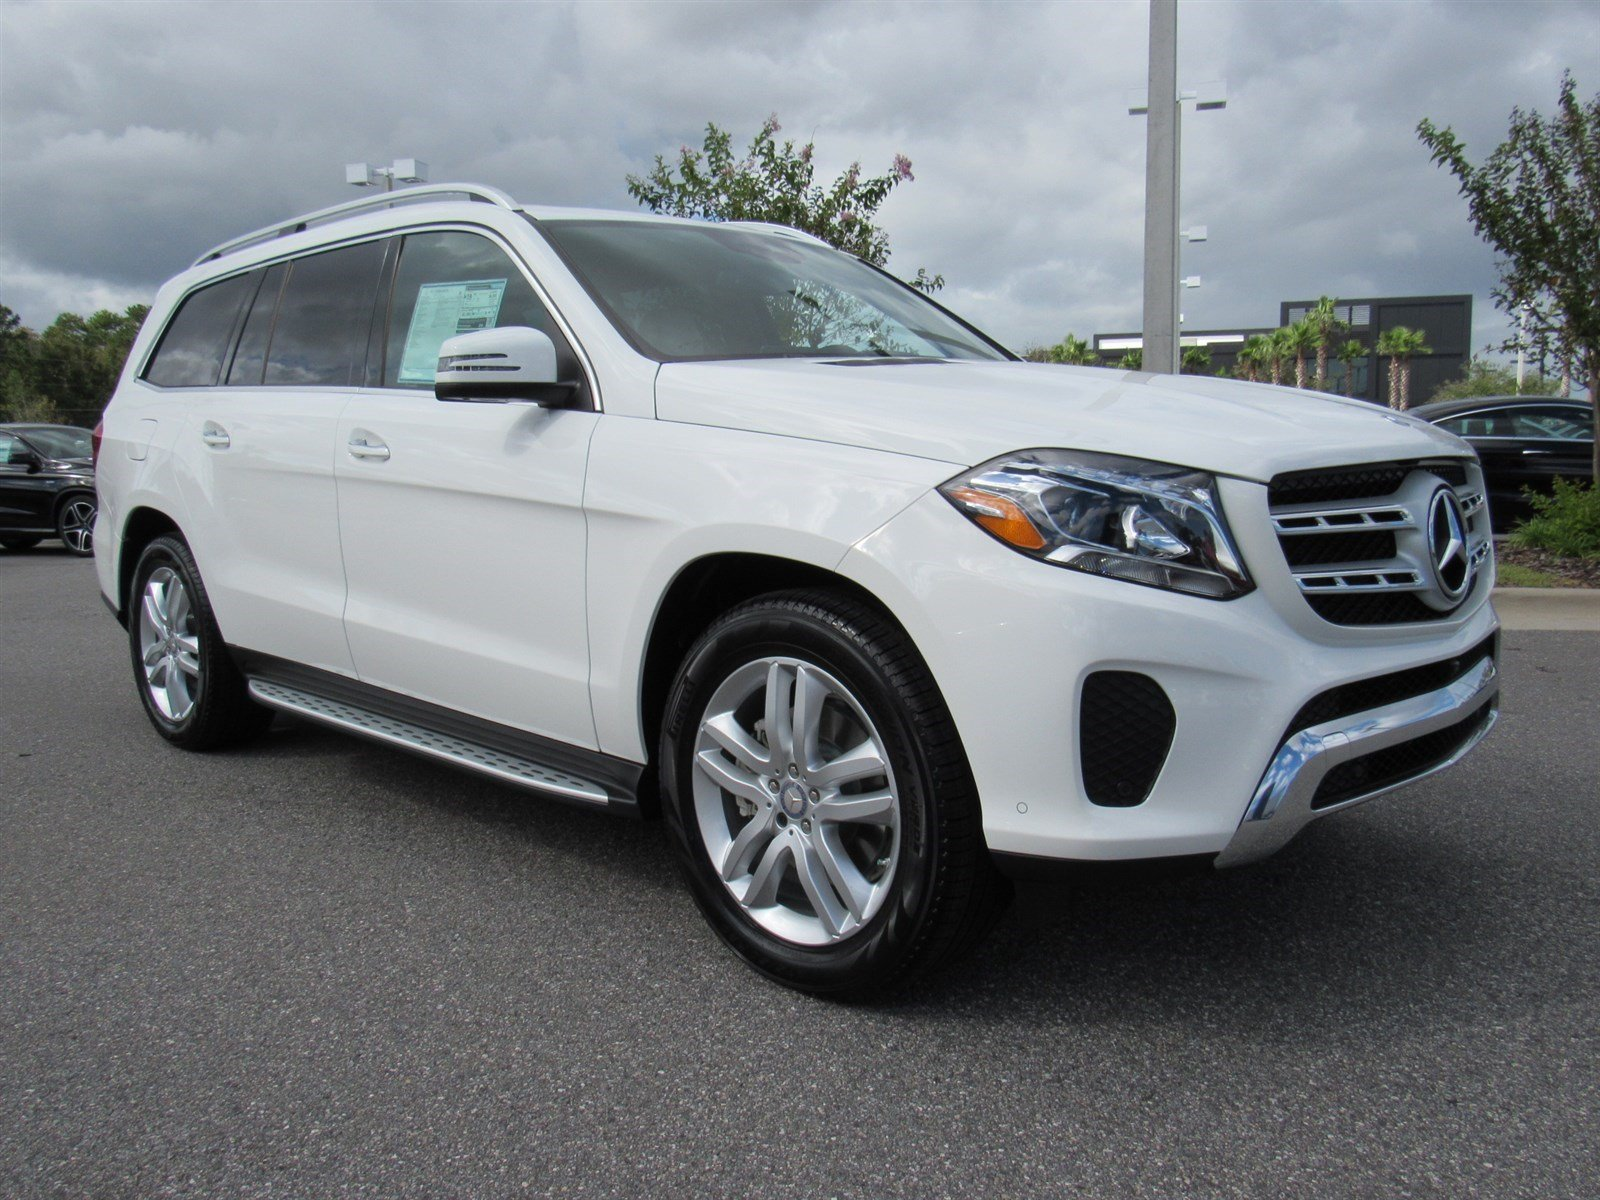 new 2017 mercedes benz gls gls450 4matic suv in daytona